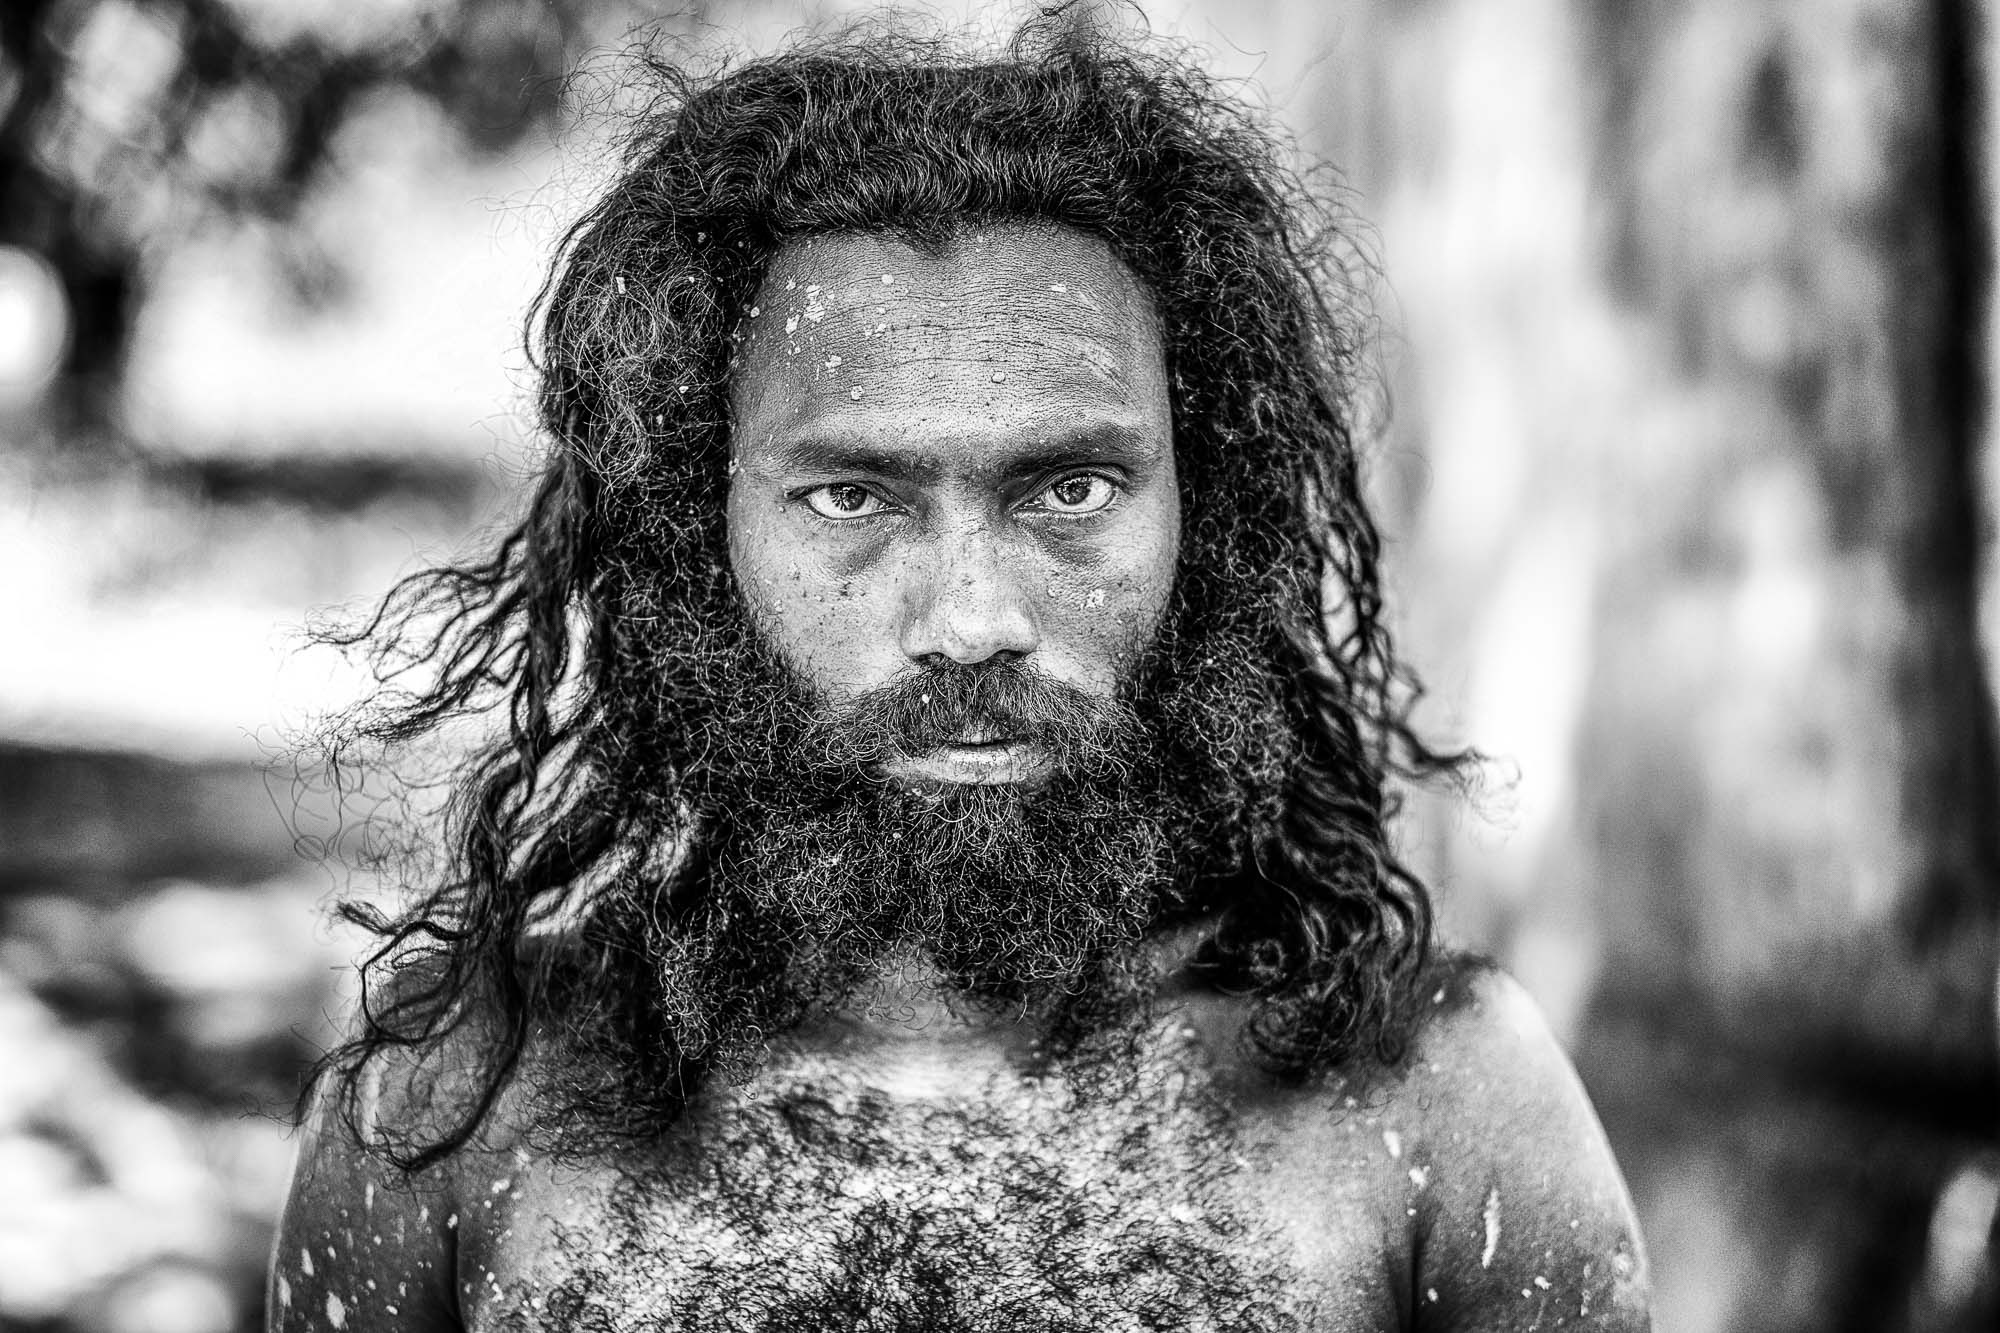 Vadda sri lanka indingenous group people - veddas portrait photography man beard long hair